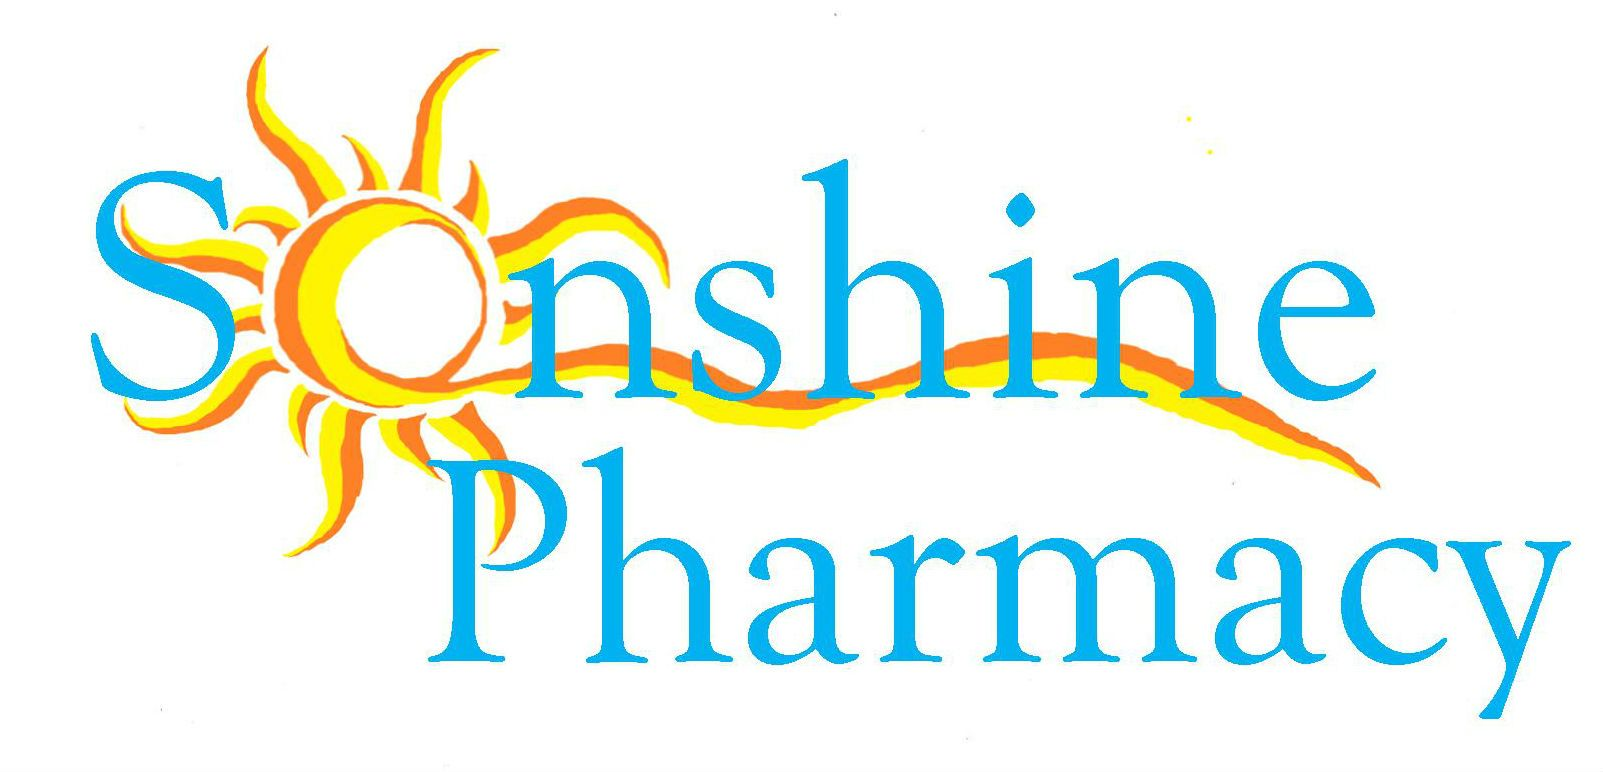 Sonshine Pharmacy